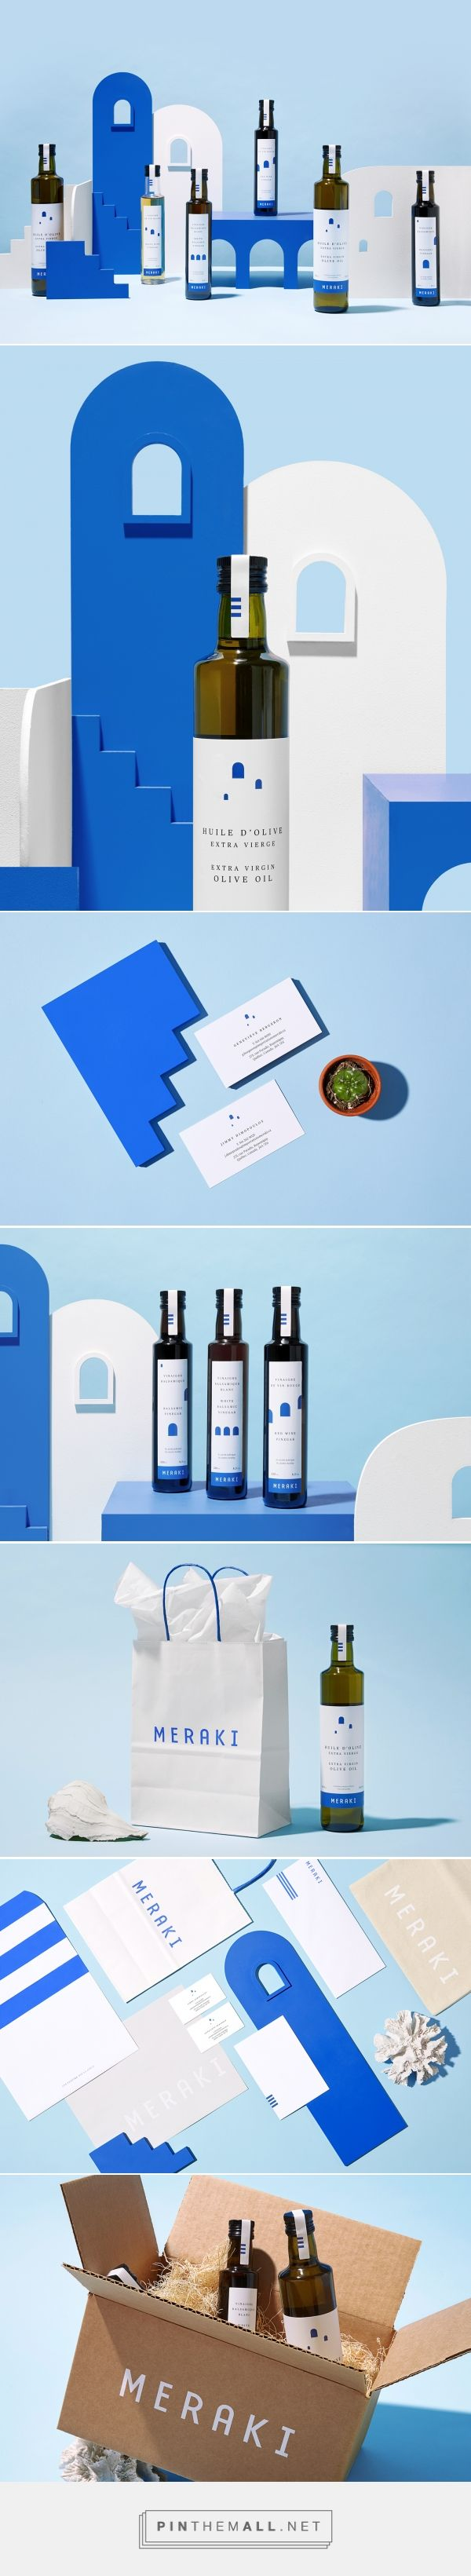 Meraki / Greek products packaging / by Caserne .